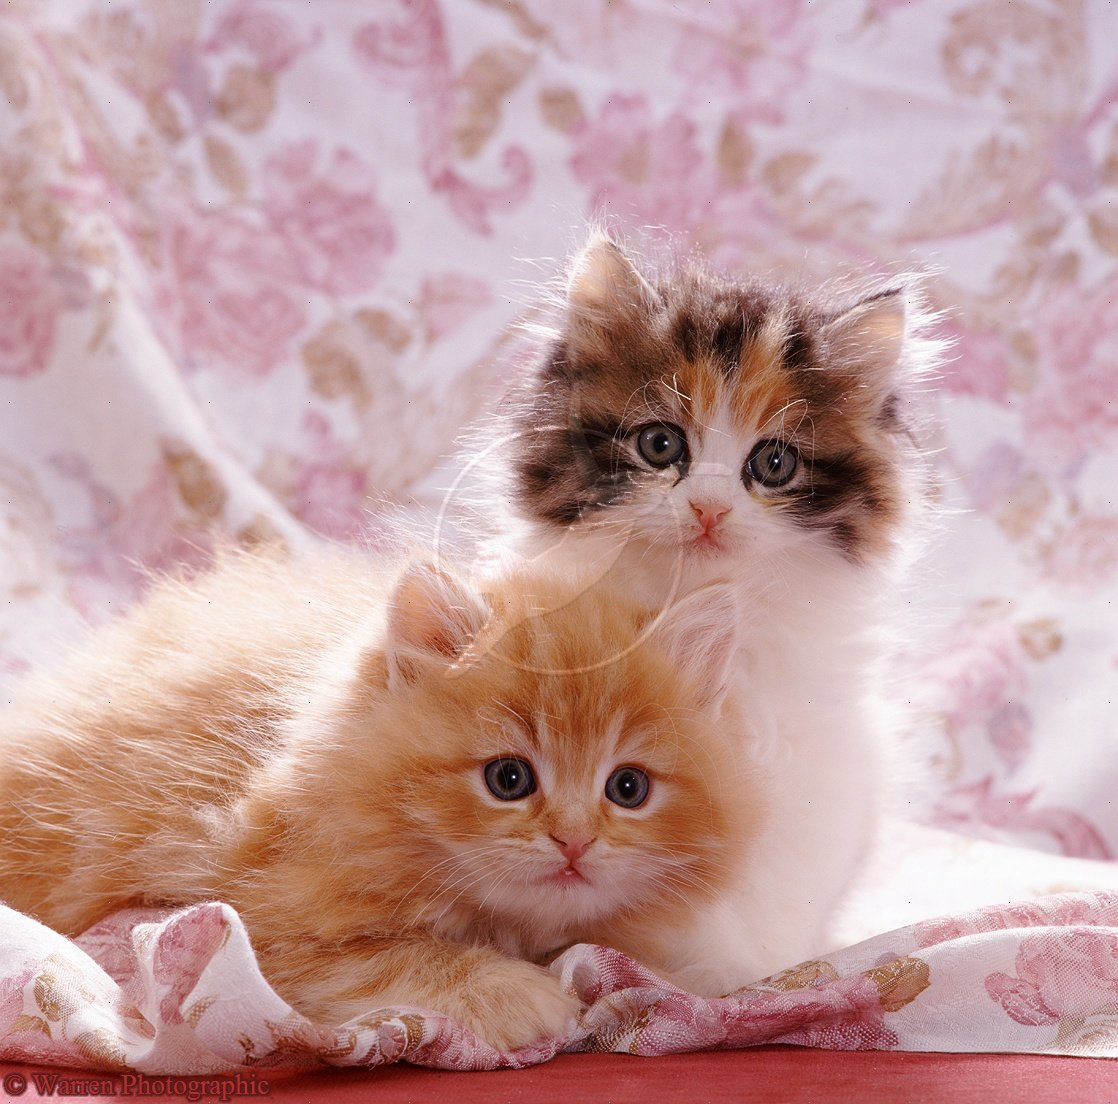 25 adorable pictures of cute cats and kittens kittens cute wallpapers cute dogs pets cute cats and kittens and wallpapers altavistaventures Choice Image